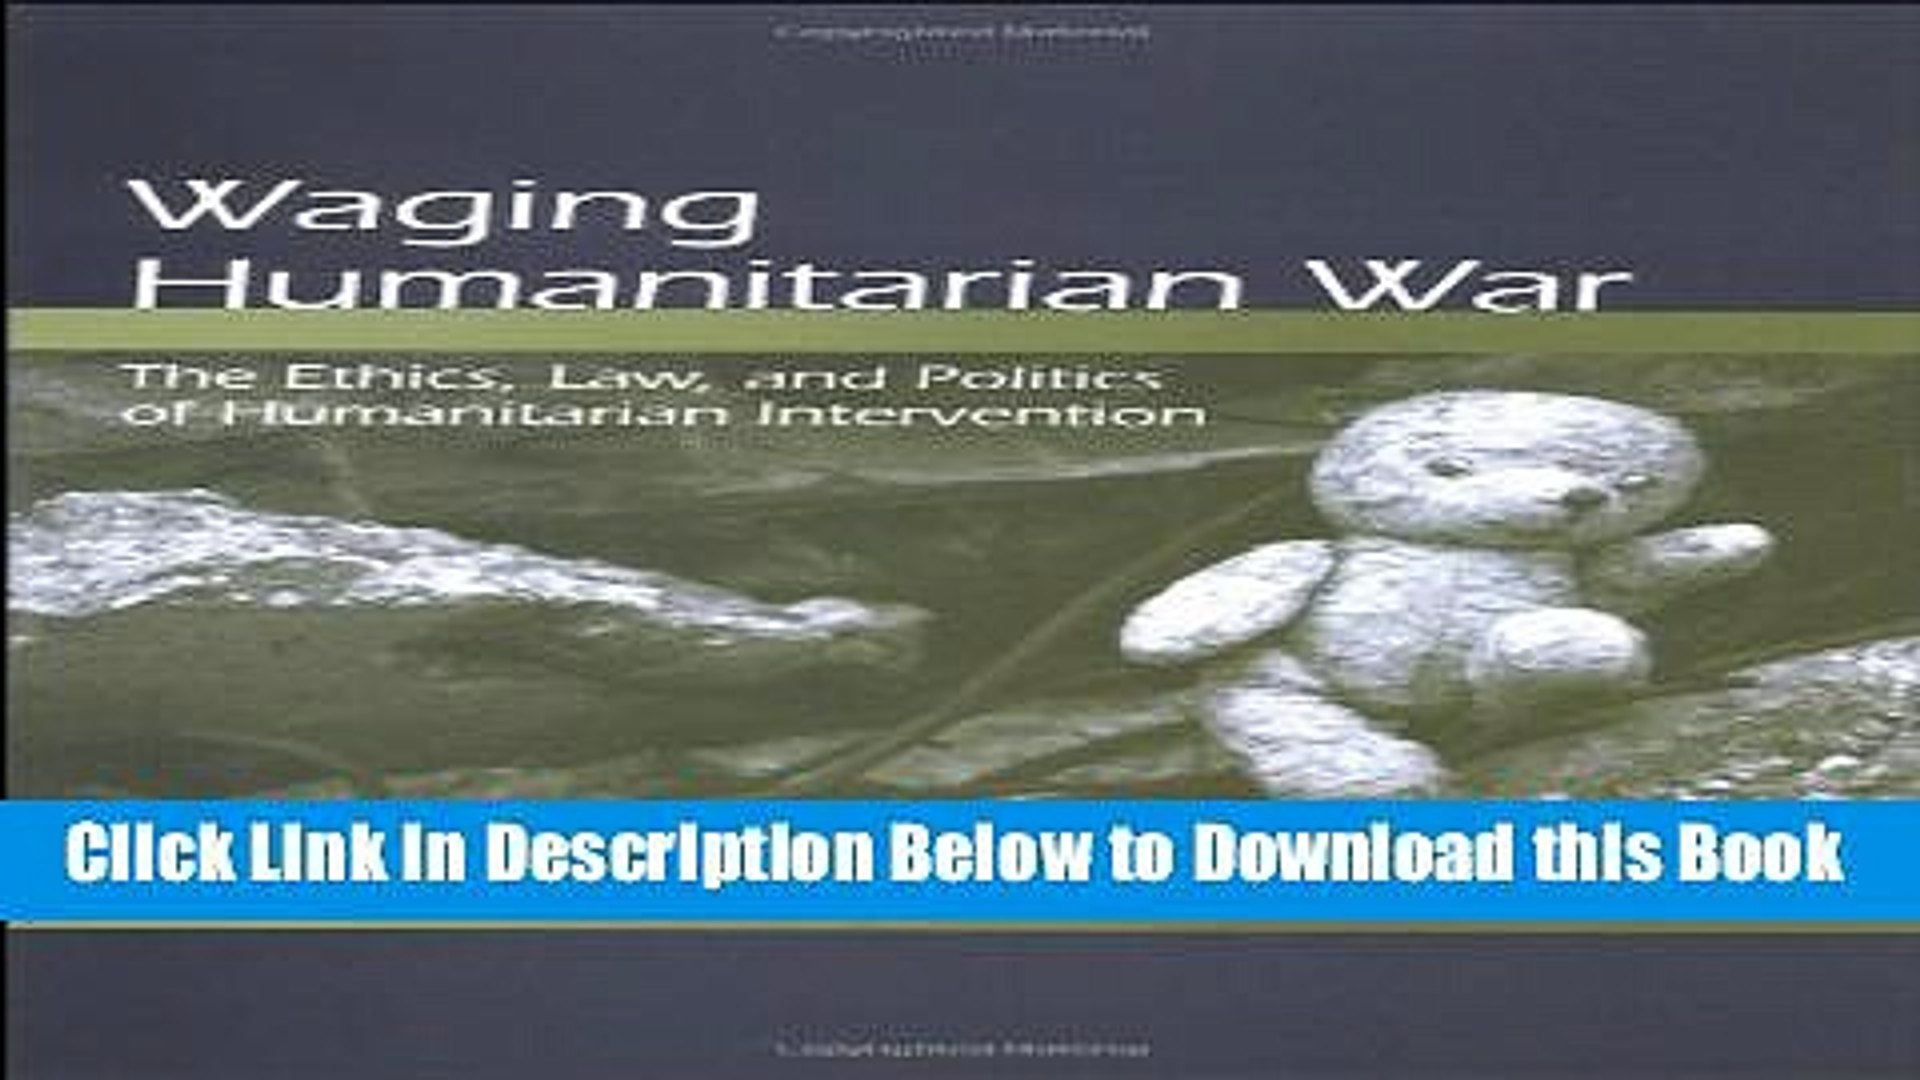 [Reads] Waging Humanitarian War: The Ethics, Law, and Politics of Humanitarian Intervention Online